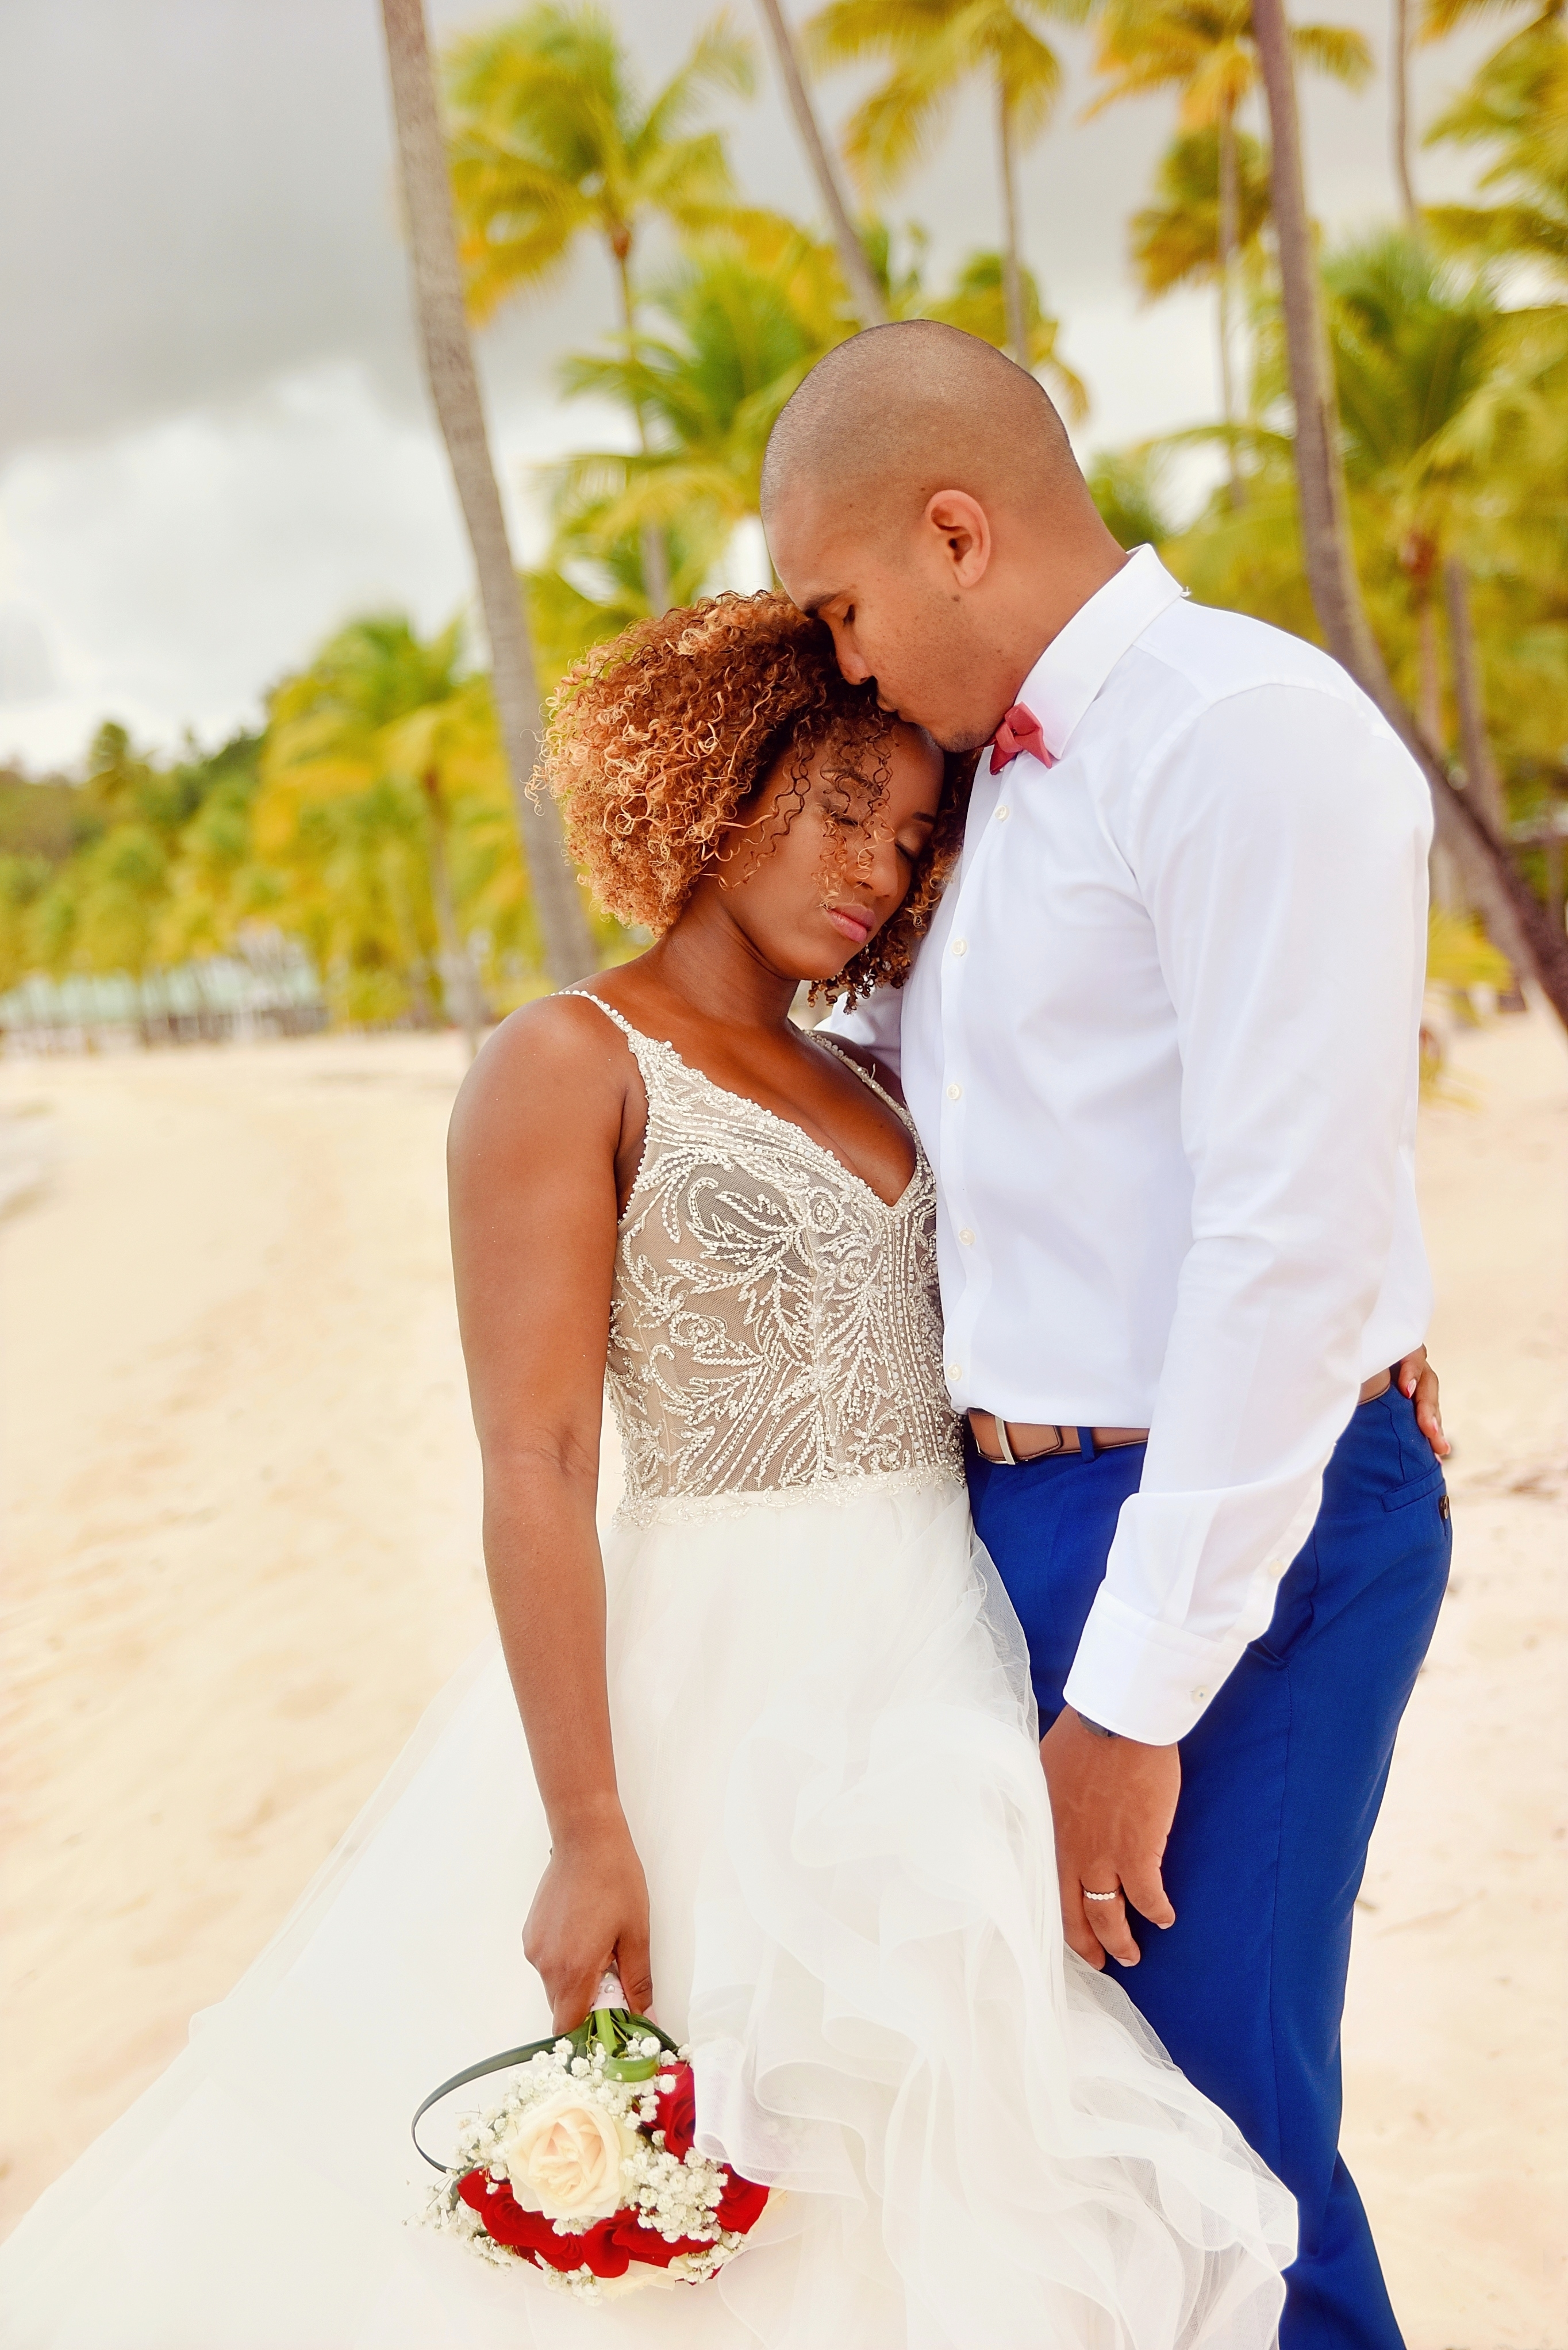 Photographe de mariage Guadeloupe . Smile and shine photography. Photographe Guadeloupe. Mariage Gua